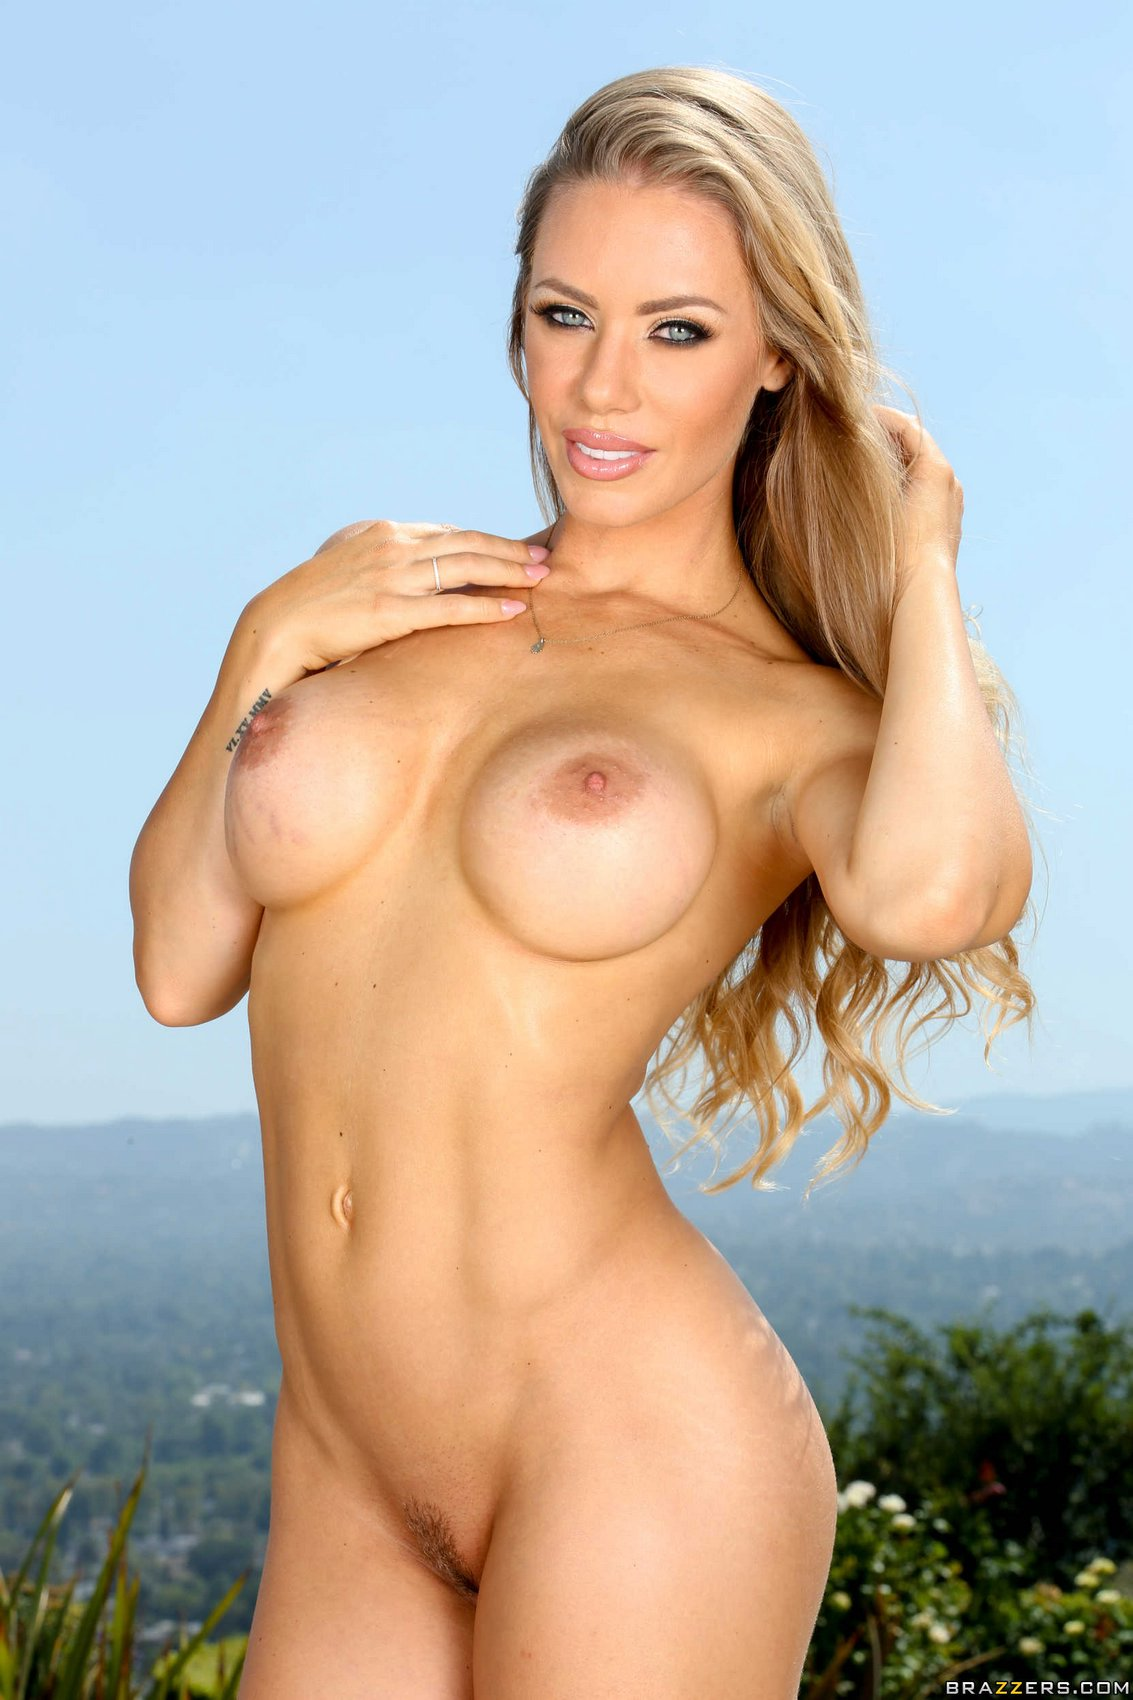 Reserve Female porn star nicole aniston variant